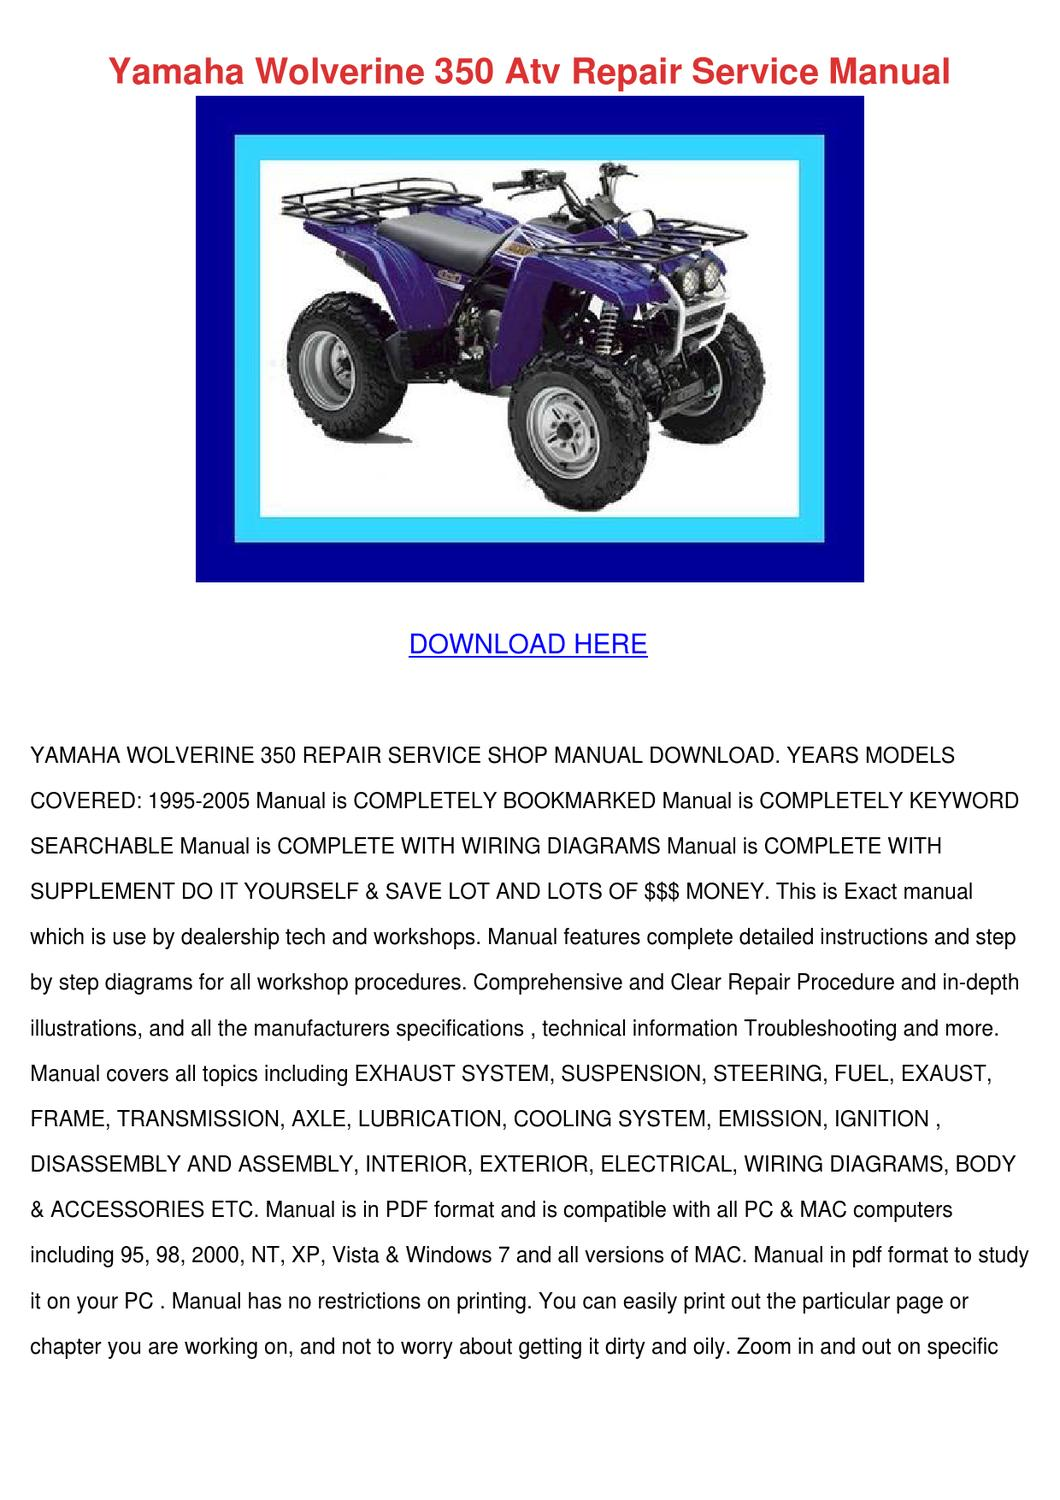 yamaha wolverine 350 repair manual